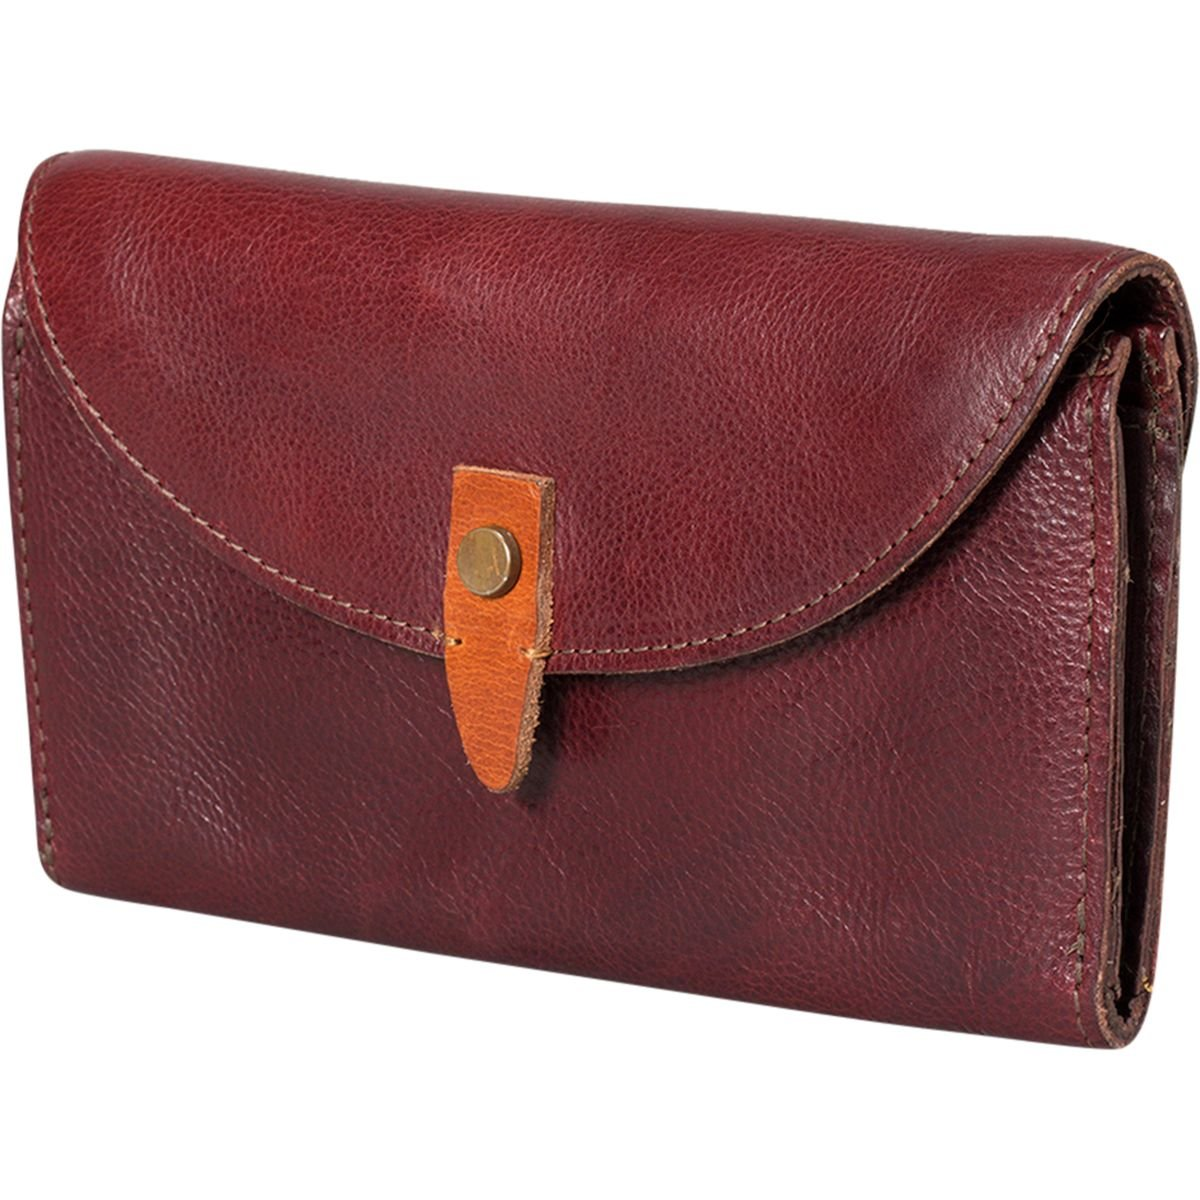 Elk Accessories Kurva Wallet - Women's Sable, One Size